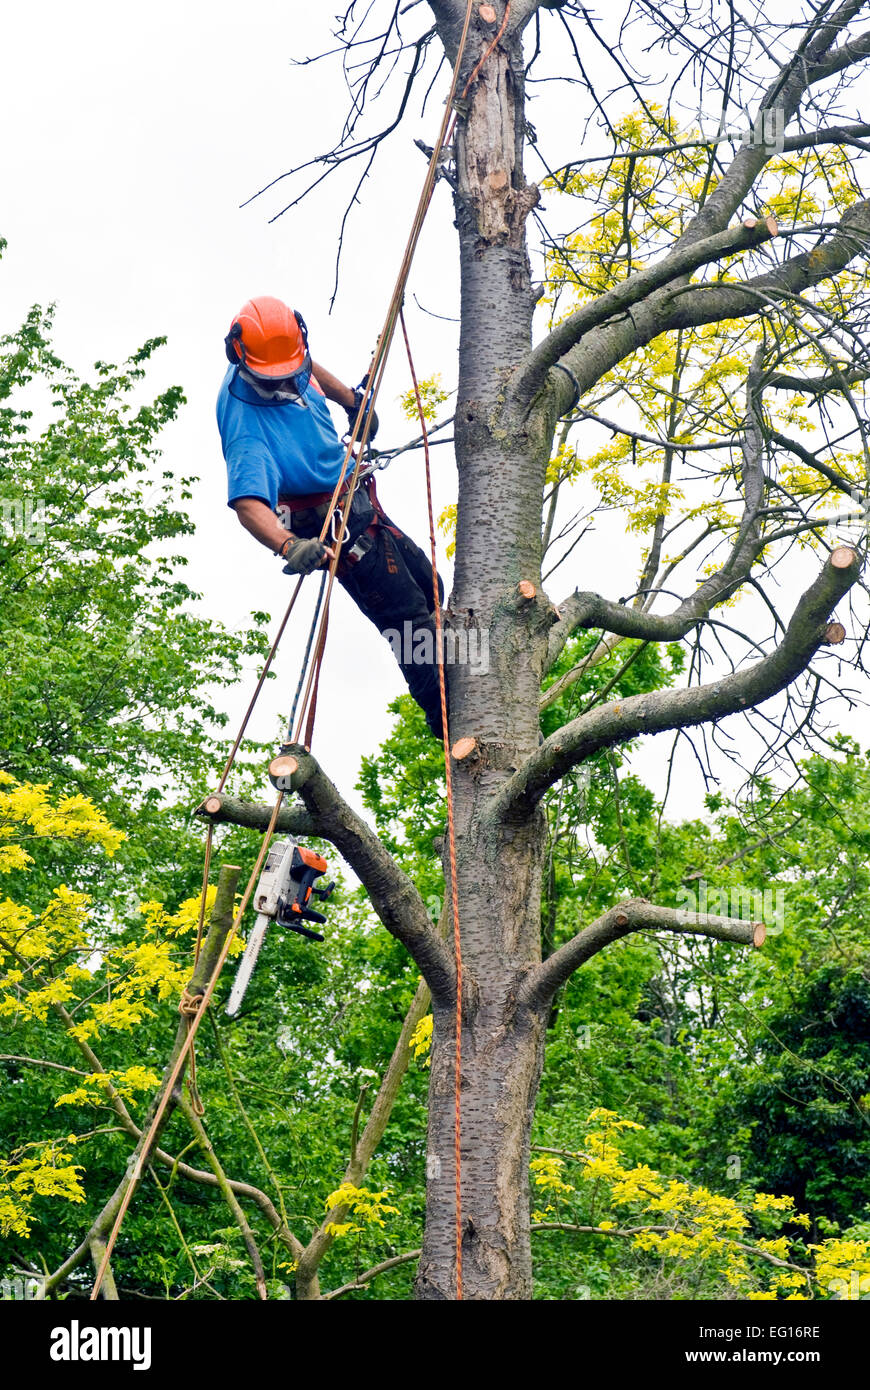 tree surgeon removing branches from a dead tree - Stock Image